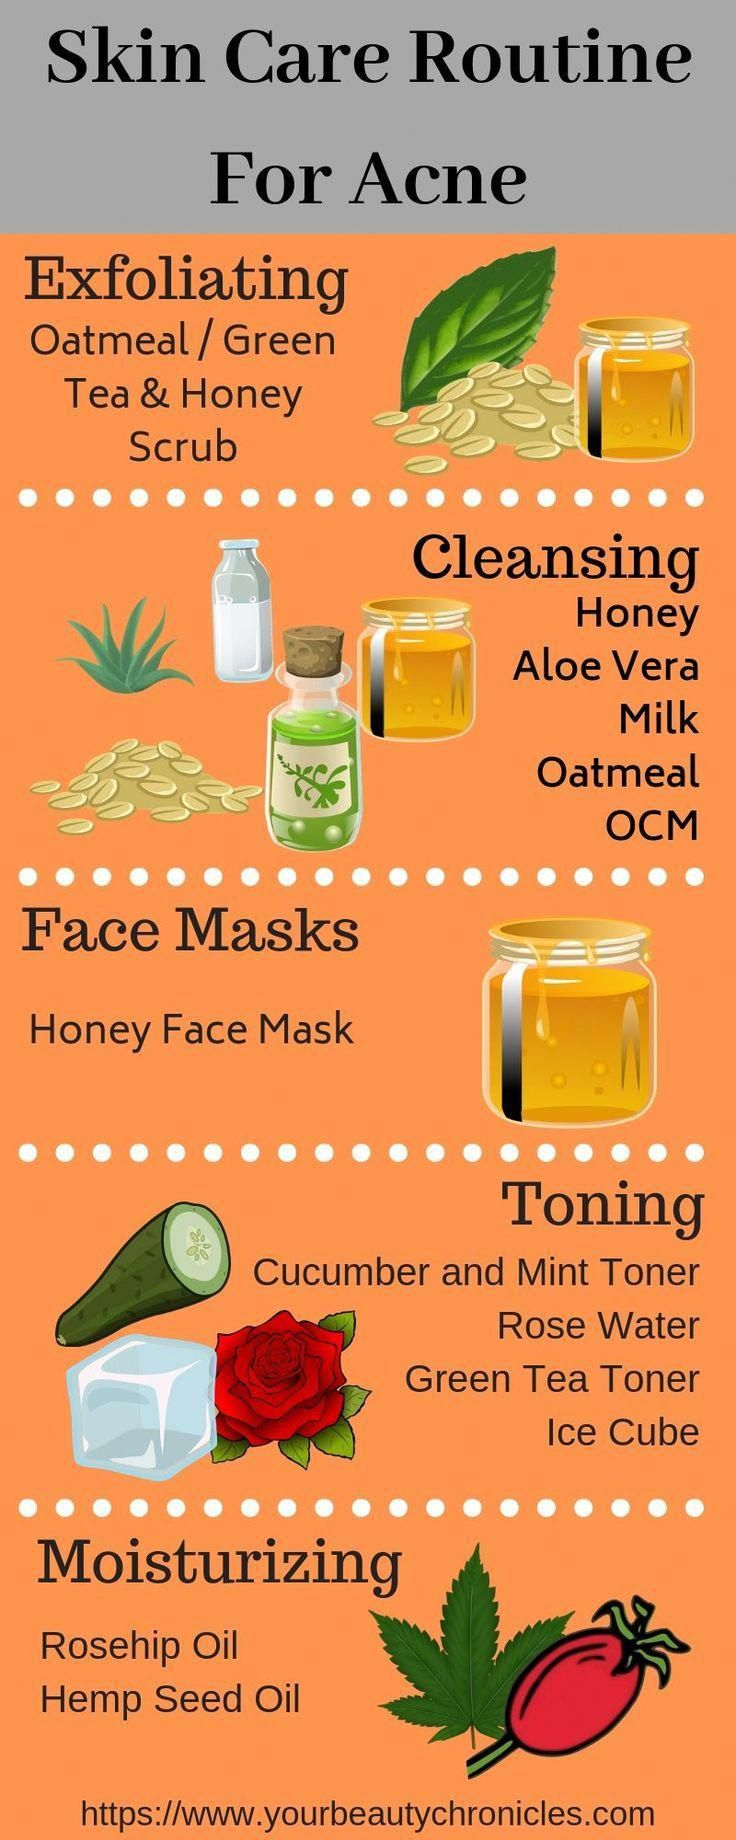 The All Natural Skin Care Routine For Acne Natural Skin Care Routine Skin Care Routine Skin Care